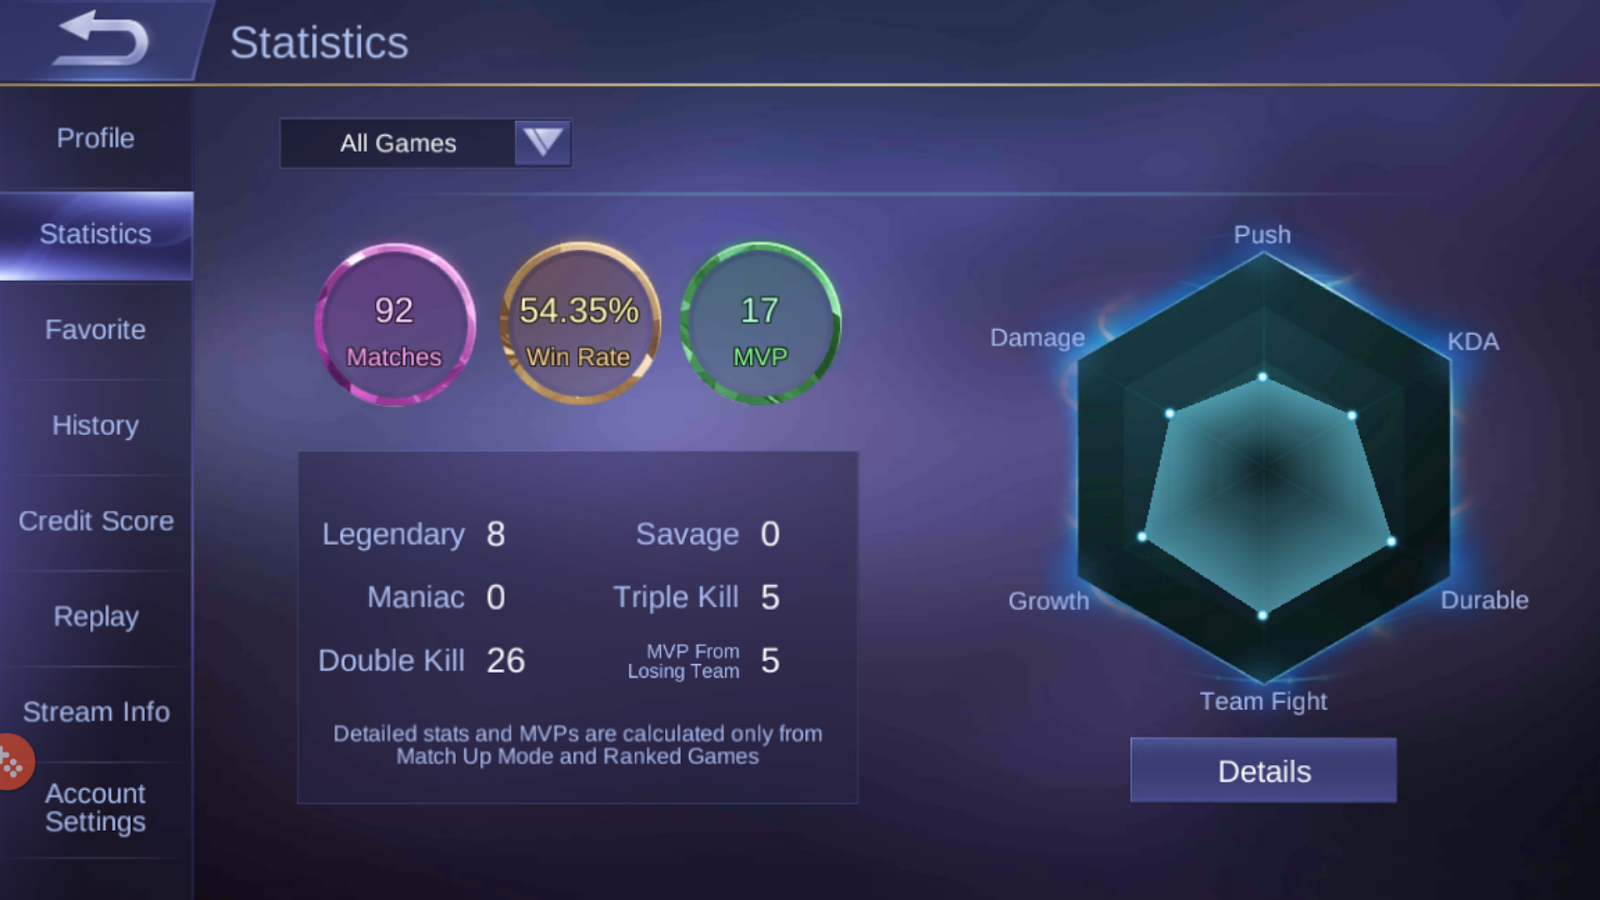 My Gameplay And My Statistics In Mobile Legends